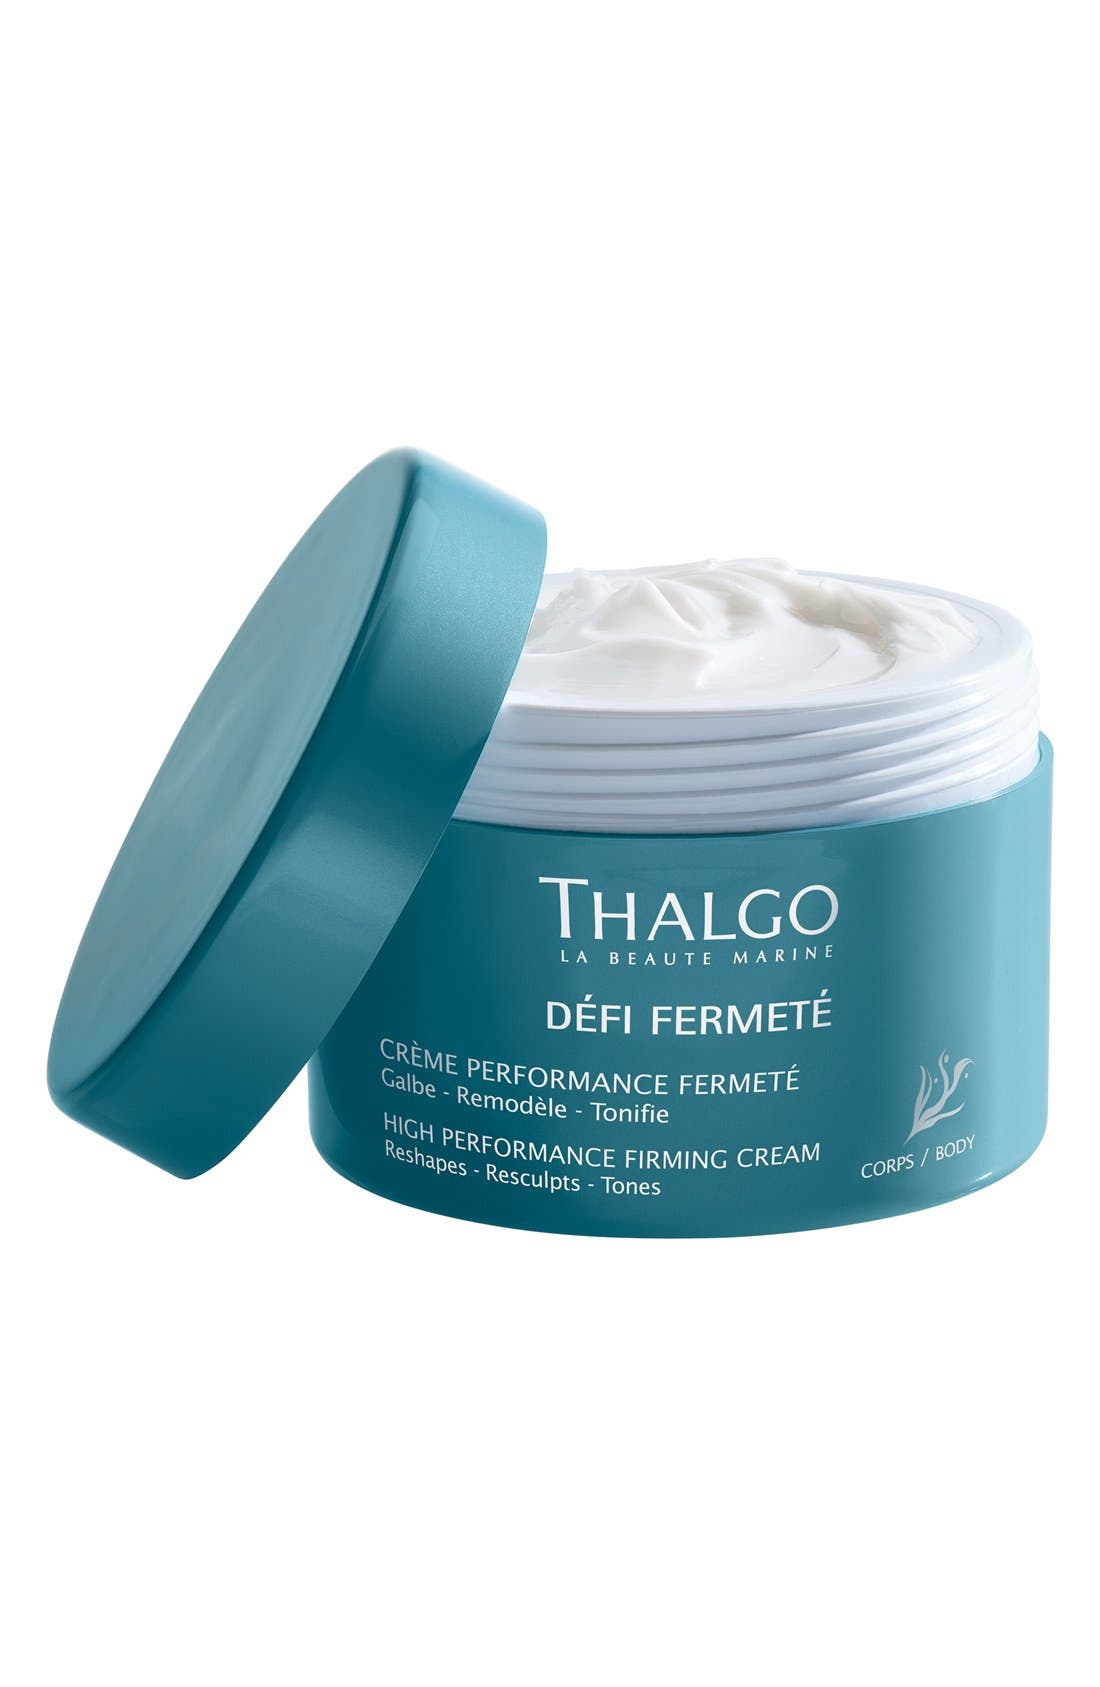 Thalgo High Performance Firming Cream